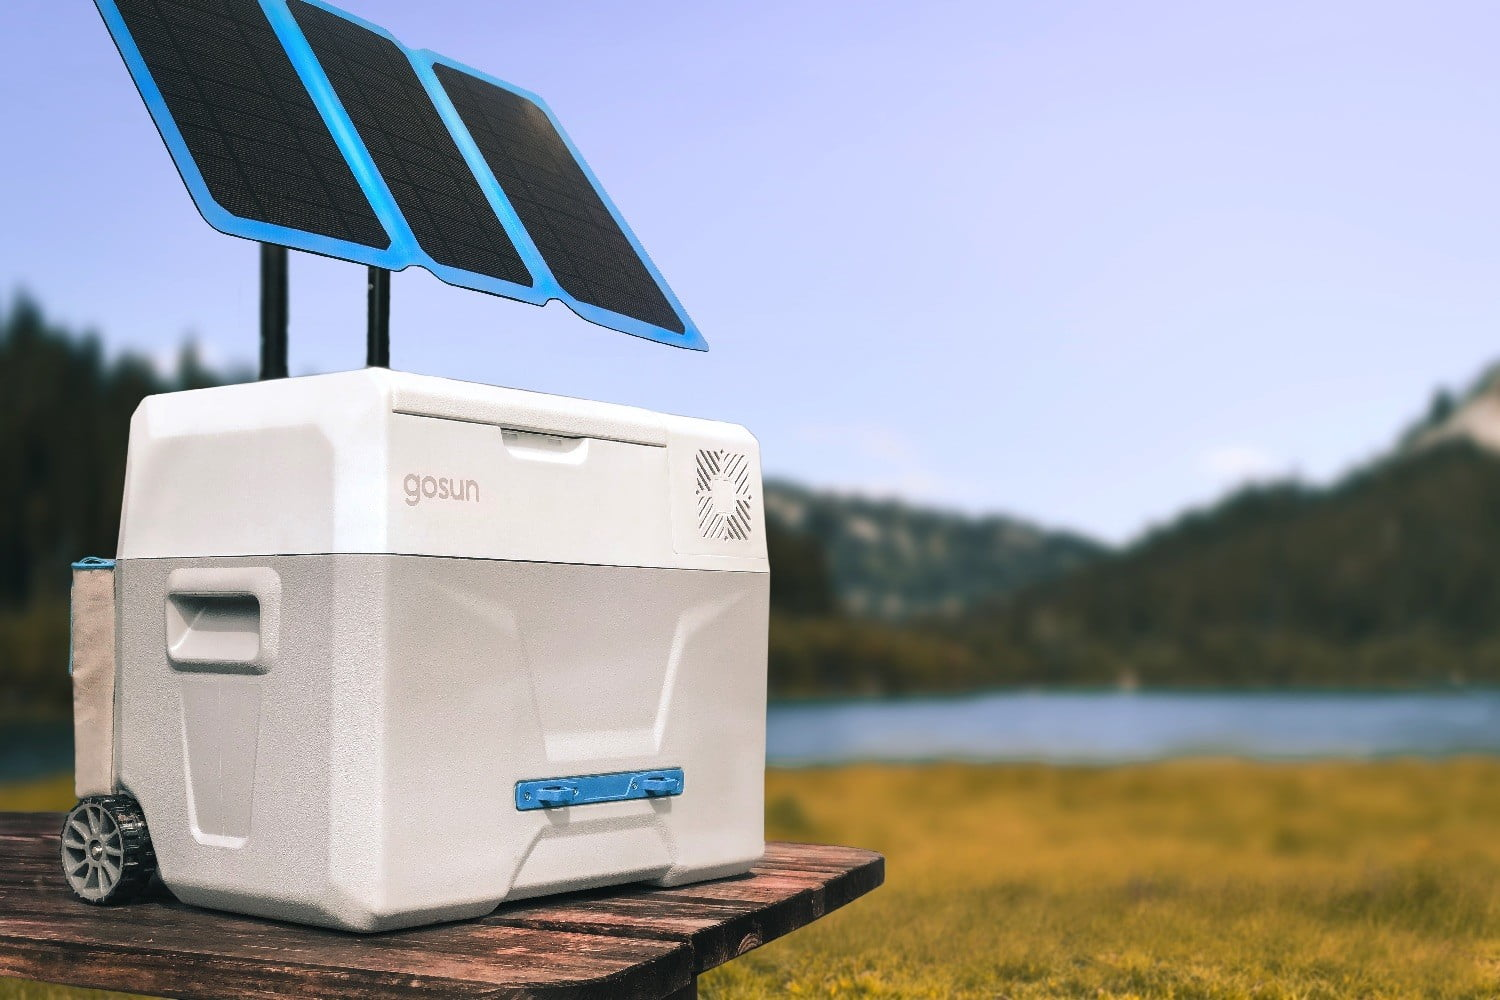 Forget ice — this cooler harnesses the power of the sun to chill your food